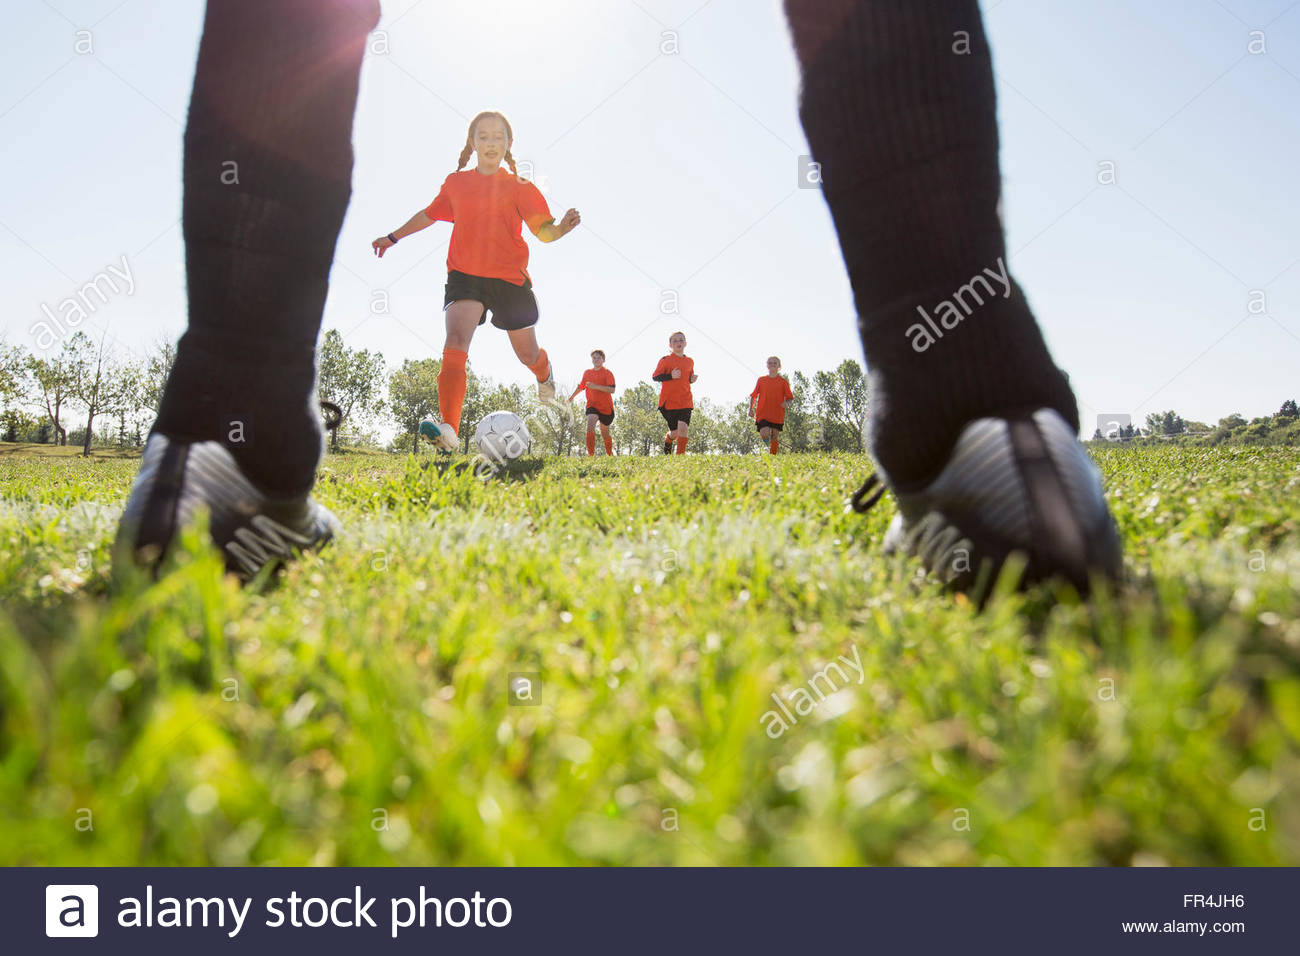 young female soccer players running towards net - Stock Image